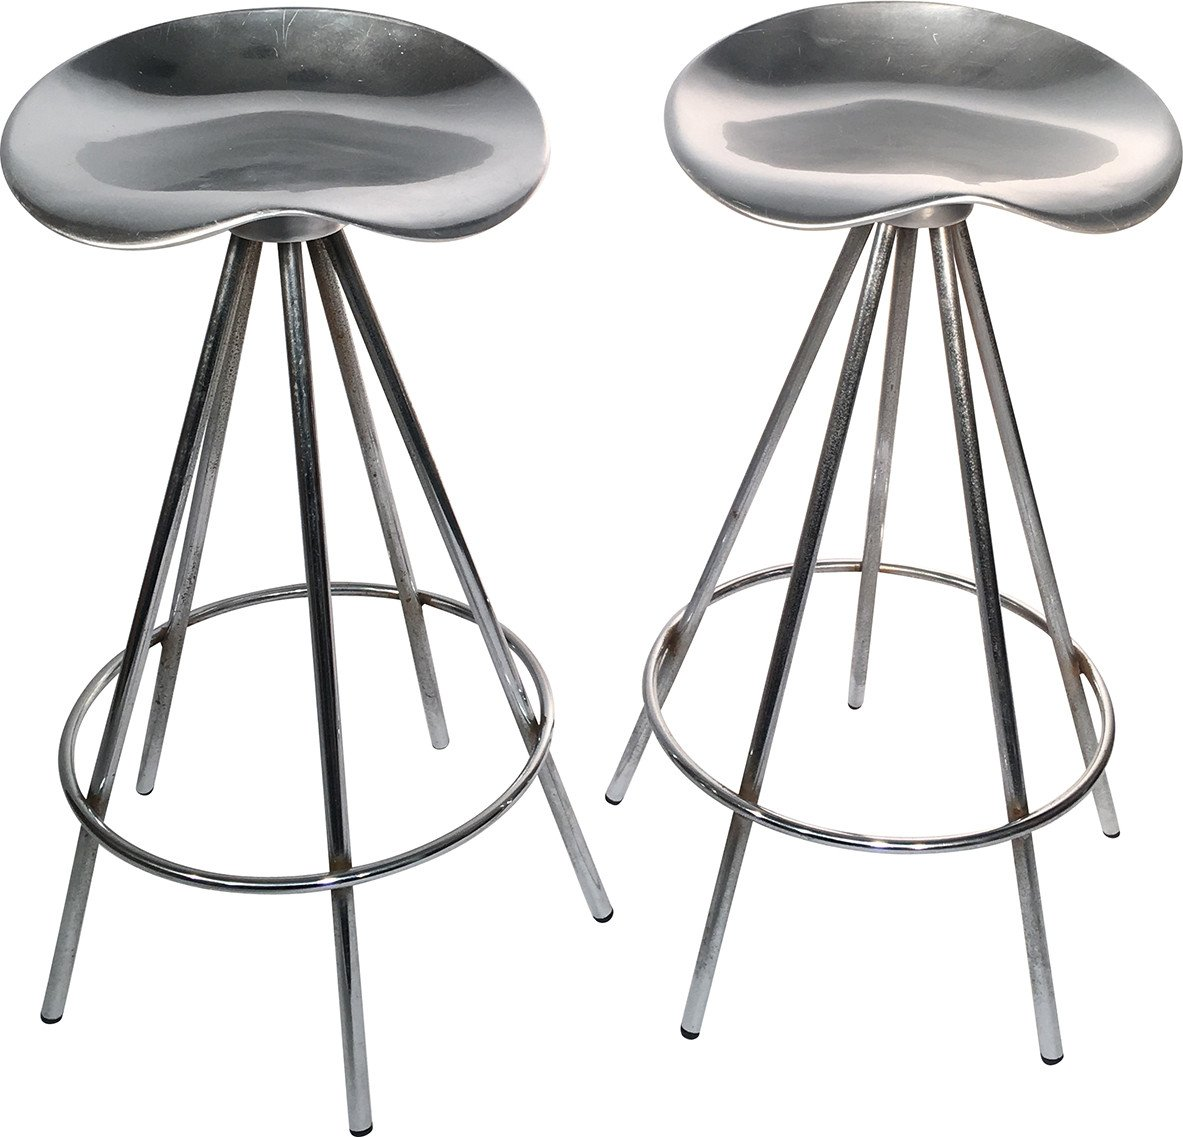 Set of Two Jamaica Stools by P. Cortés for Amat, Spain, 1990s